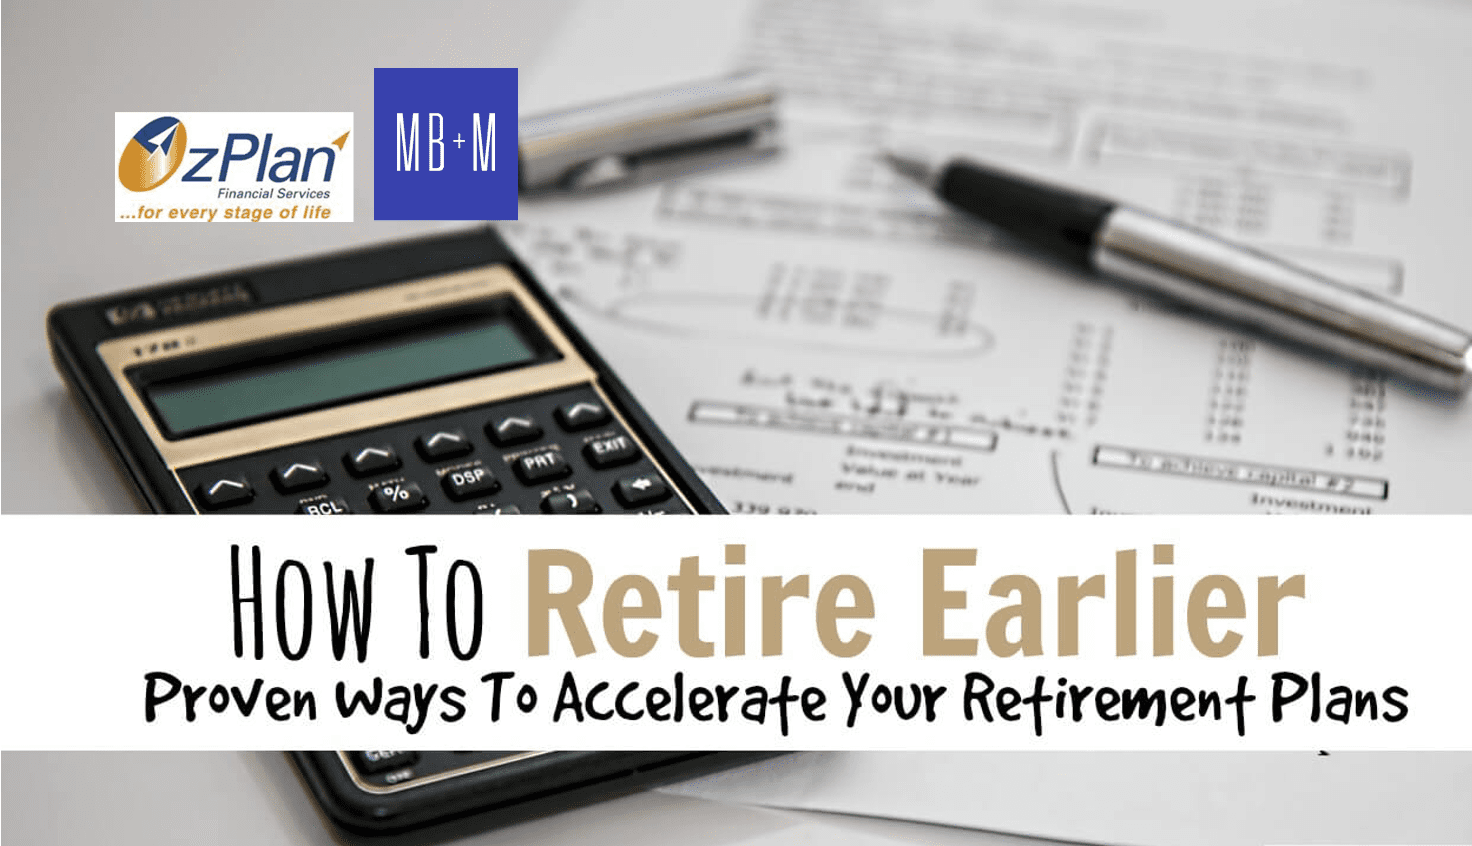 Accelerate your Retirement Plans!